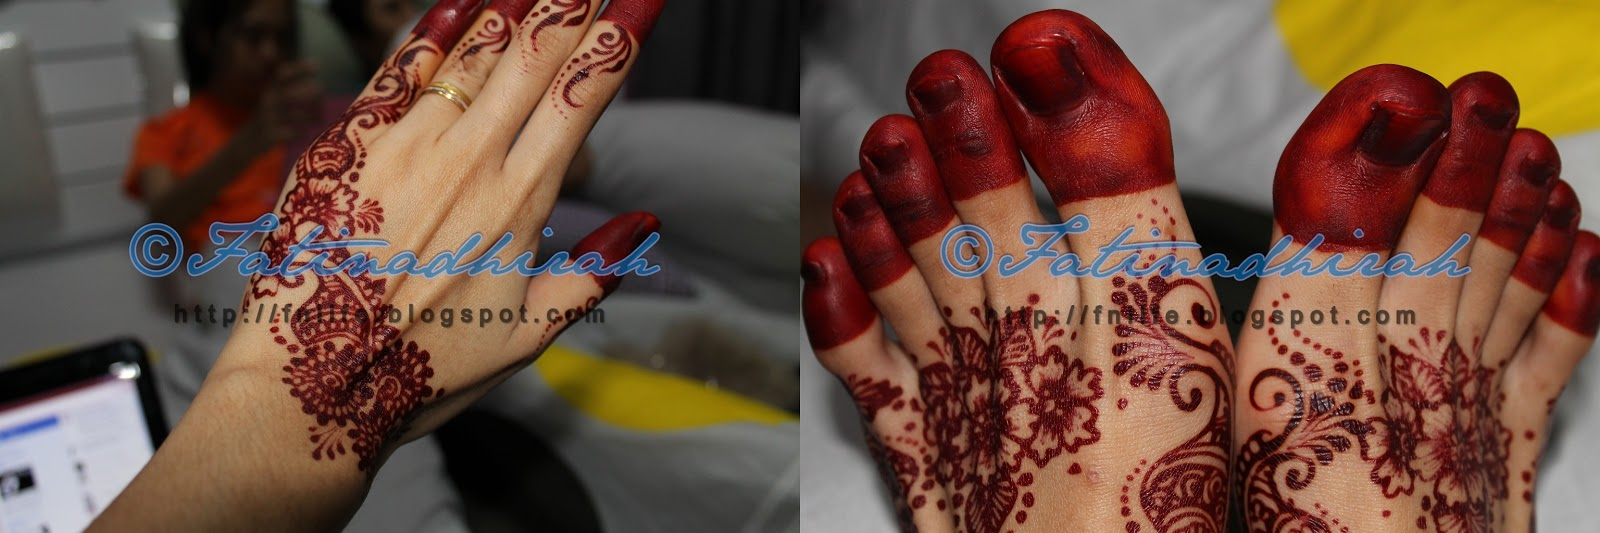 Wedding Review My Henna Little Rafa